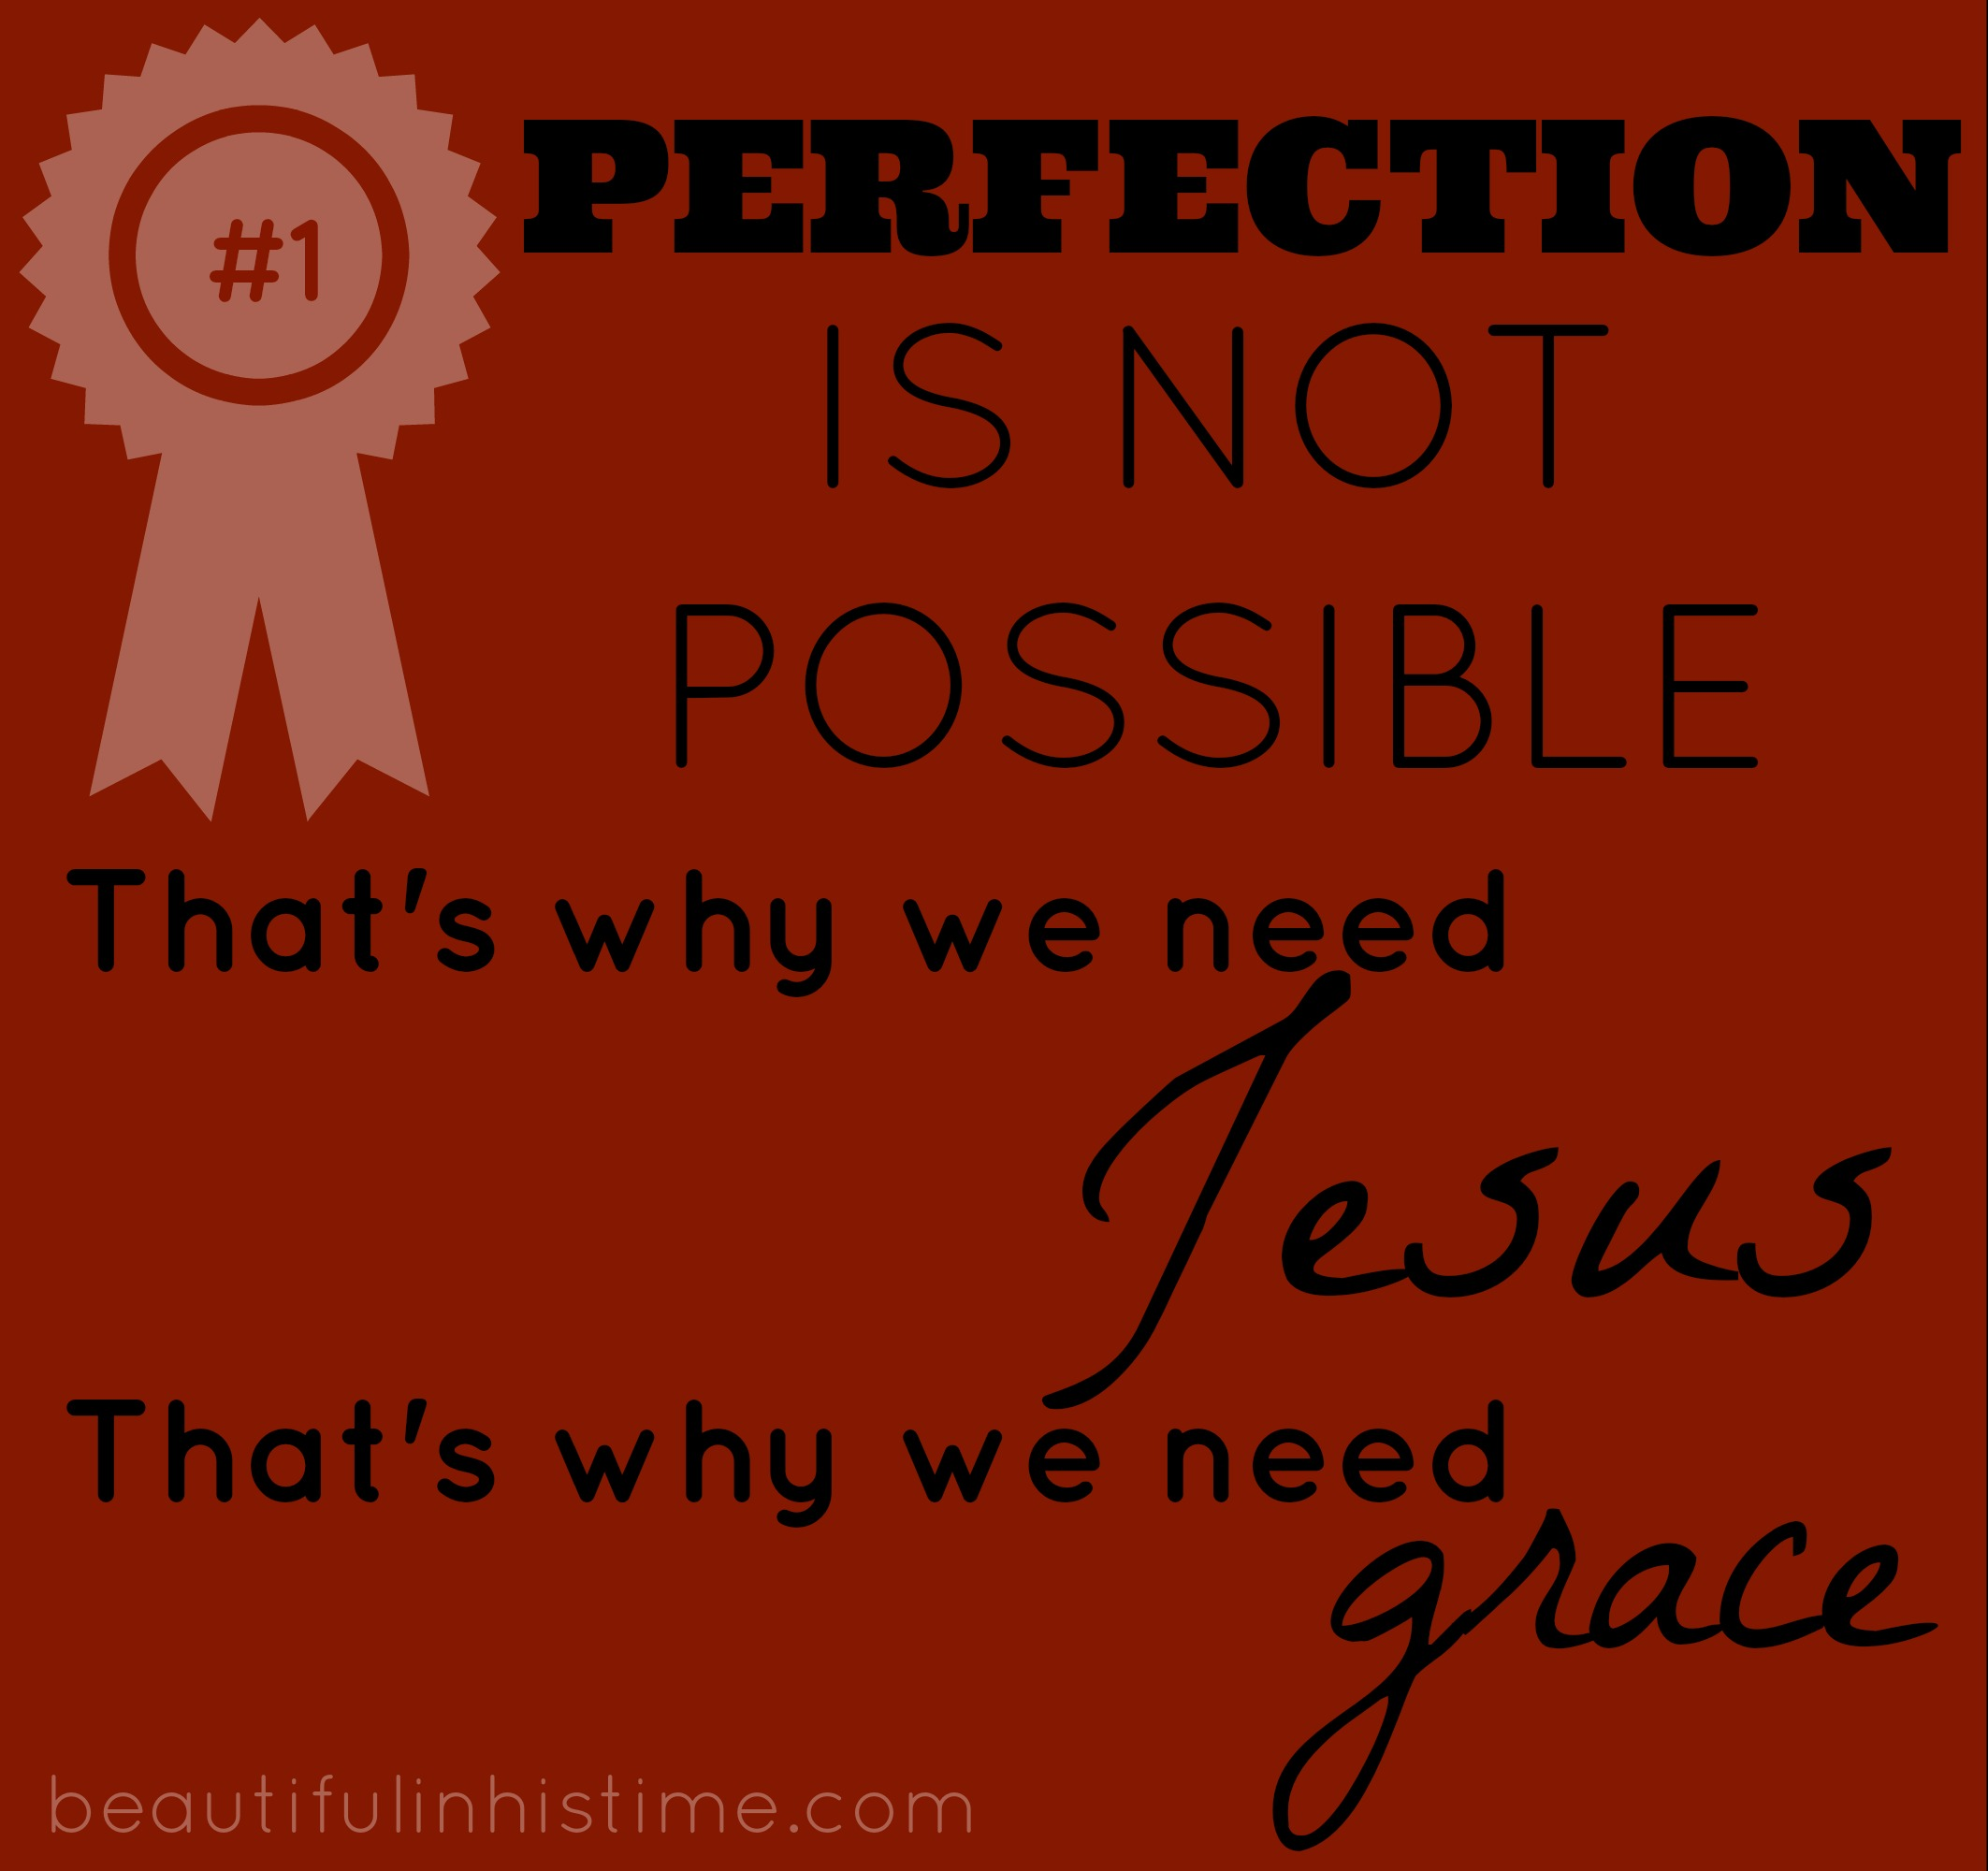 #perfection is not possible {the wilderness between #legalism and #grace - part 7 @beautifulinhistime.com}